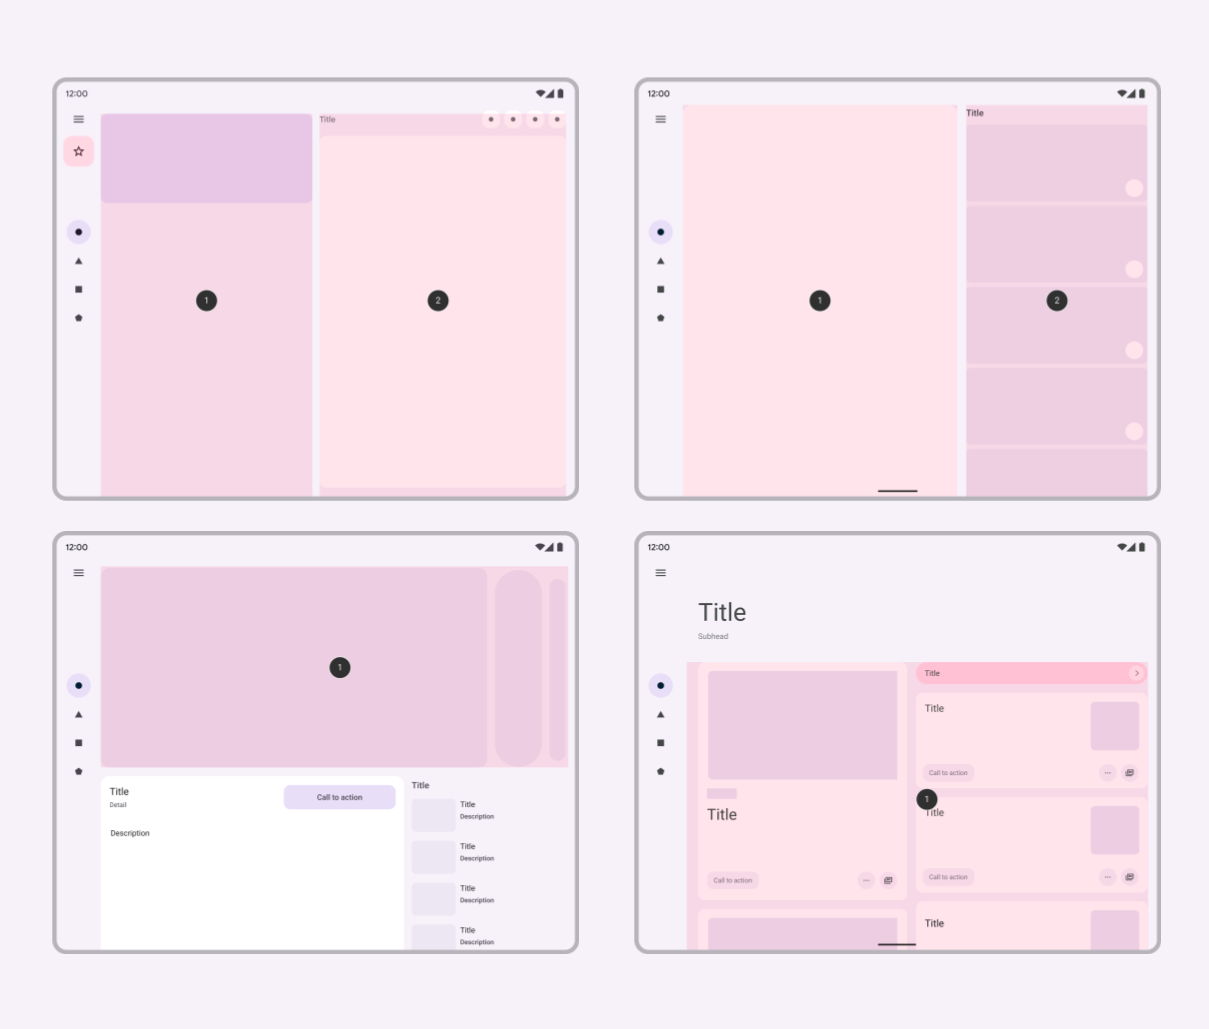 Image shows four Adaptive UI patterns in the Material Design guidelines